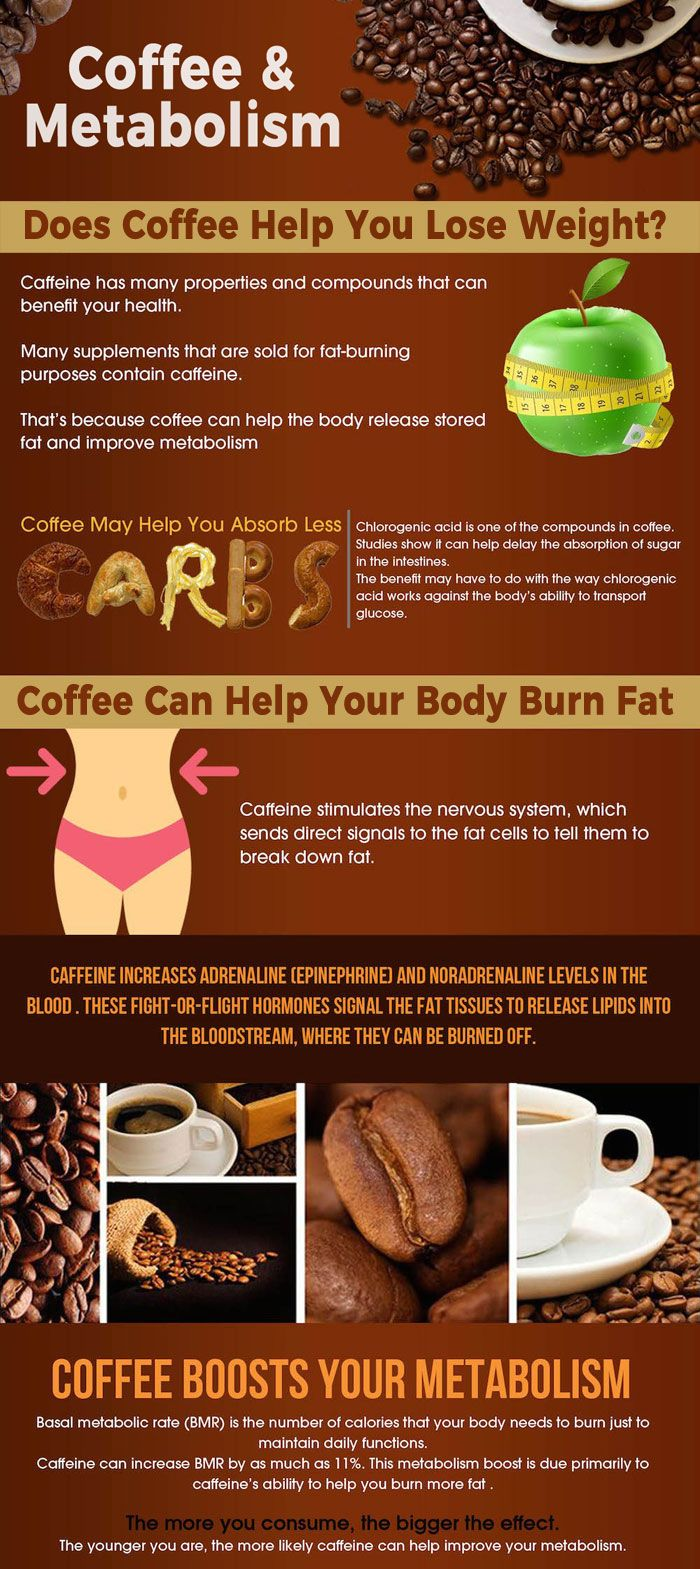 Coffee for weight loss. Coffee help lose weight